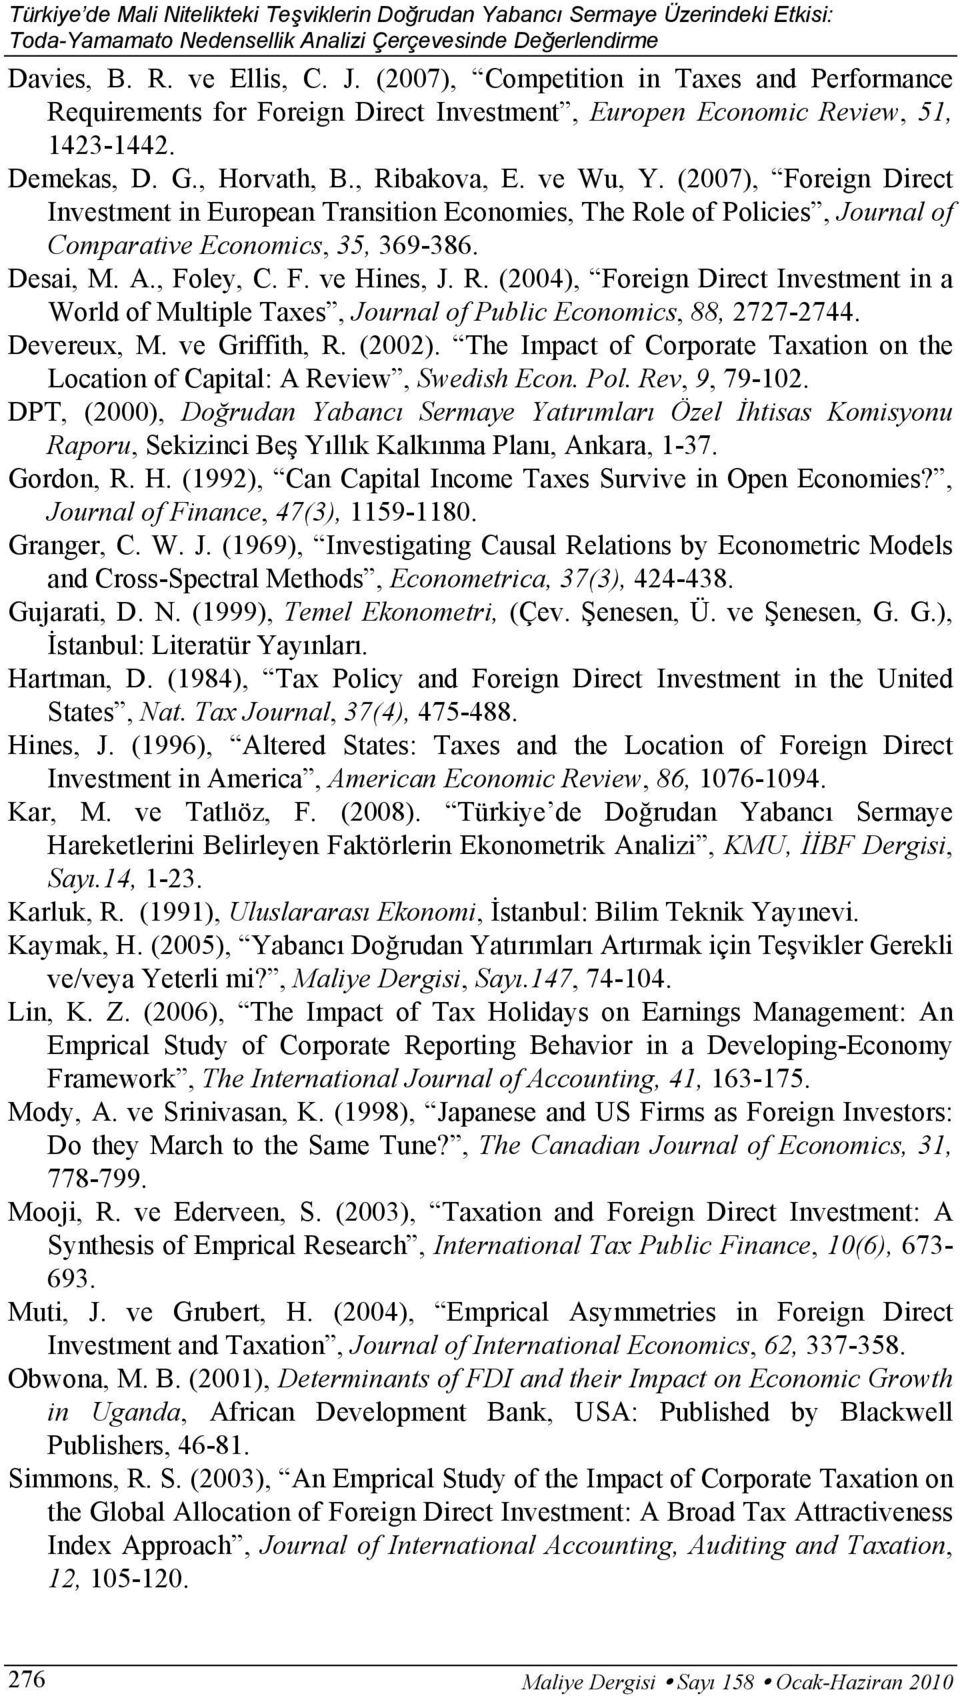 (2007), Foreign Direct Investment in European Transition Economies, The Role of Policies, Journal of Comparative Economics, 35, 369-386. Desai, M. A., Foley, C. F. ve Hines, J. R. (2004), Foreign Direct Investment in a World of Multiple Taxes, Journal of Public Economics, 88, 2727-2744.